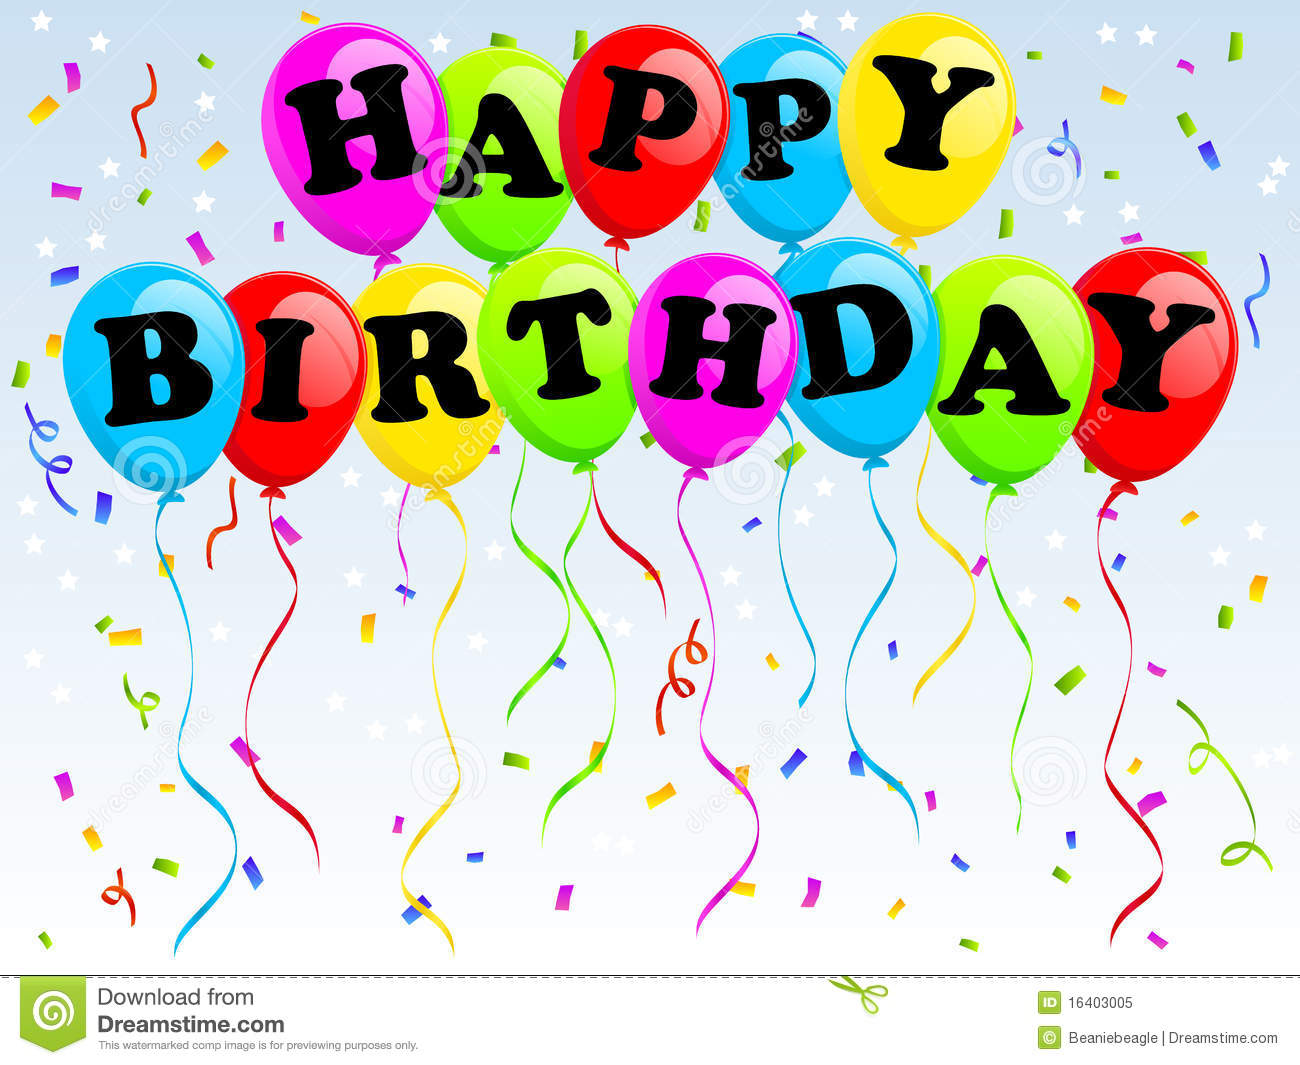 Happy Birthday Balloons Royalty Free Stock Photo - Image: 16403005